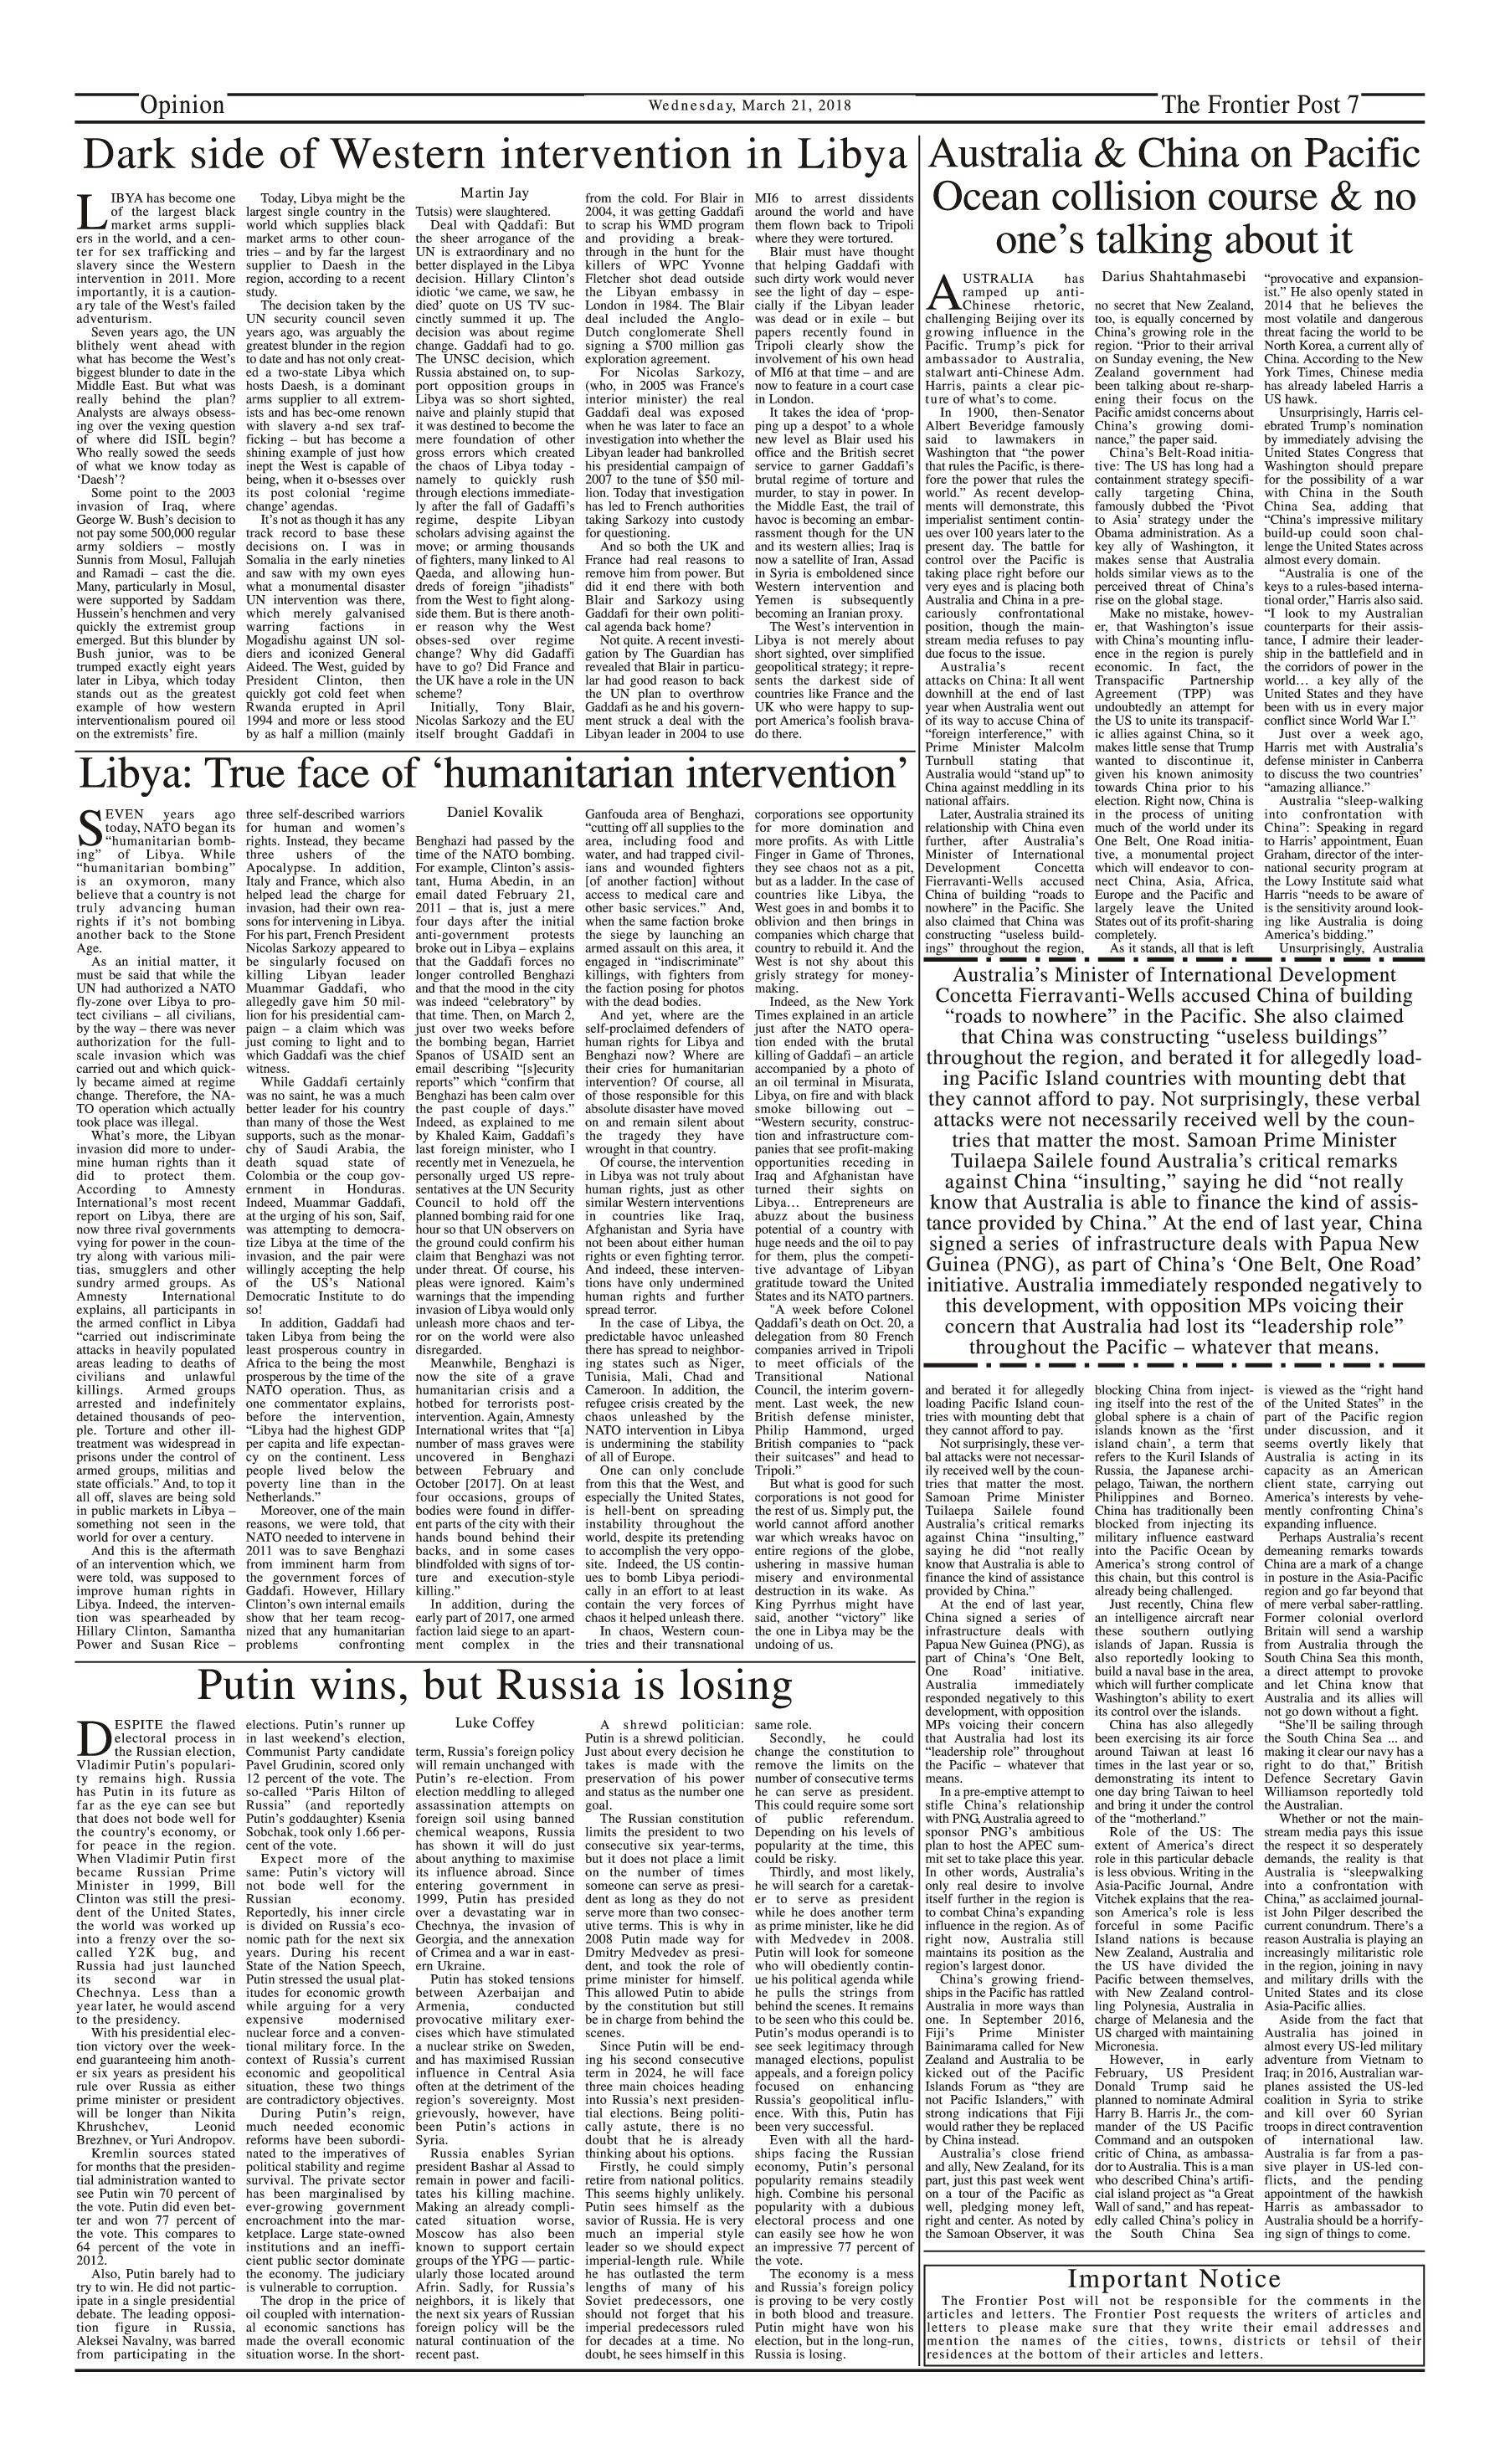 Opinion Page 21-3